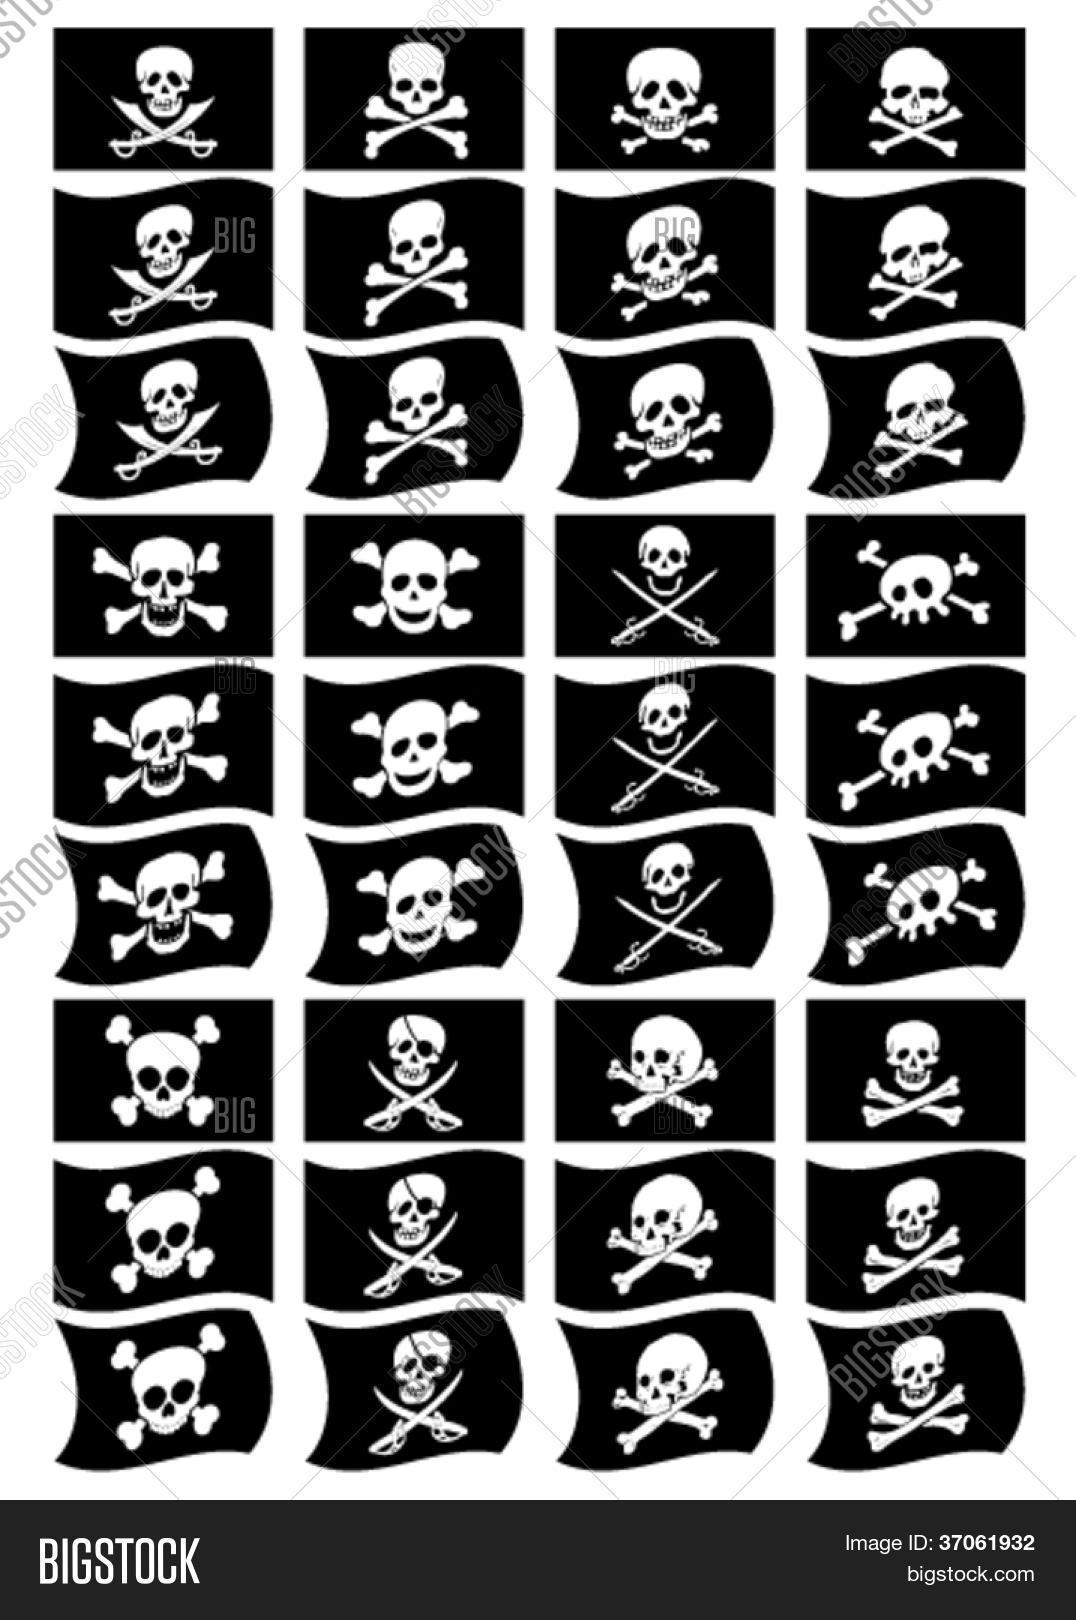 Pirate Flags Vector Photo Free Trial Bigstock